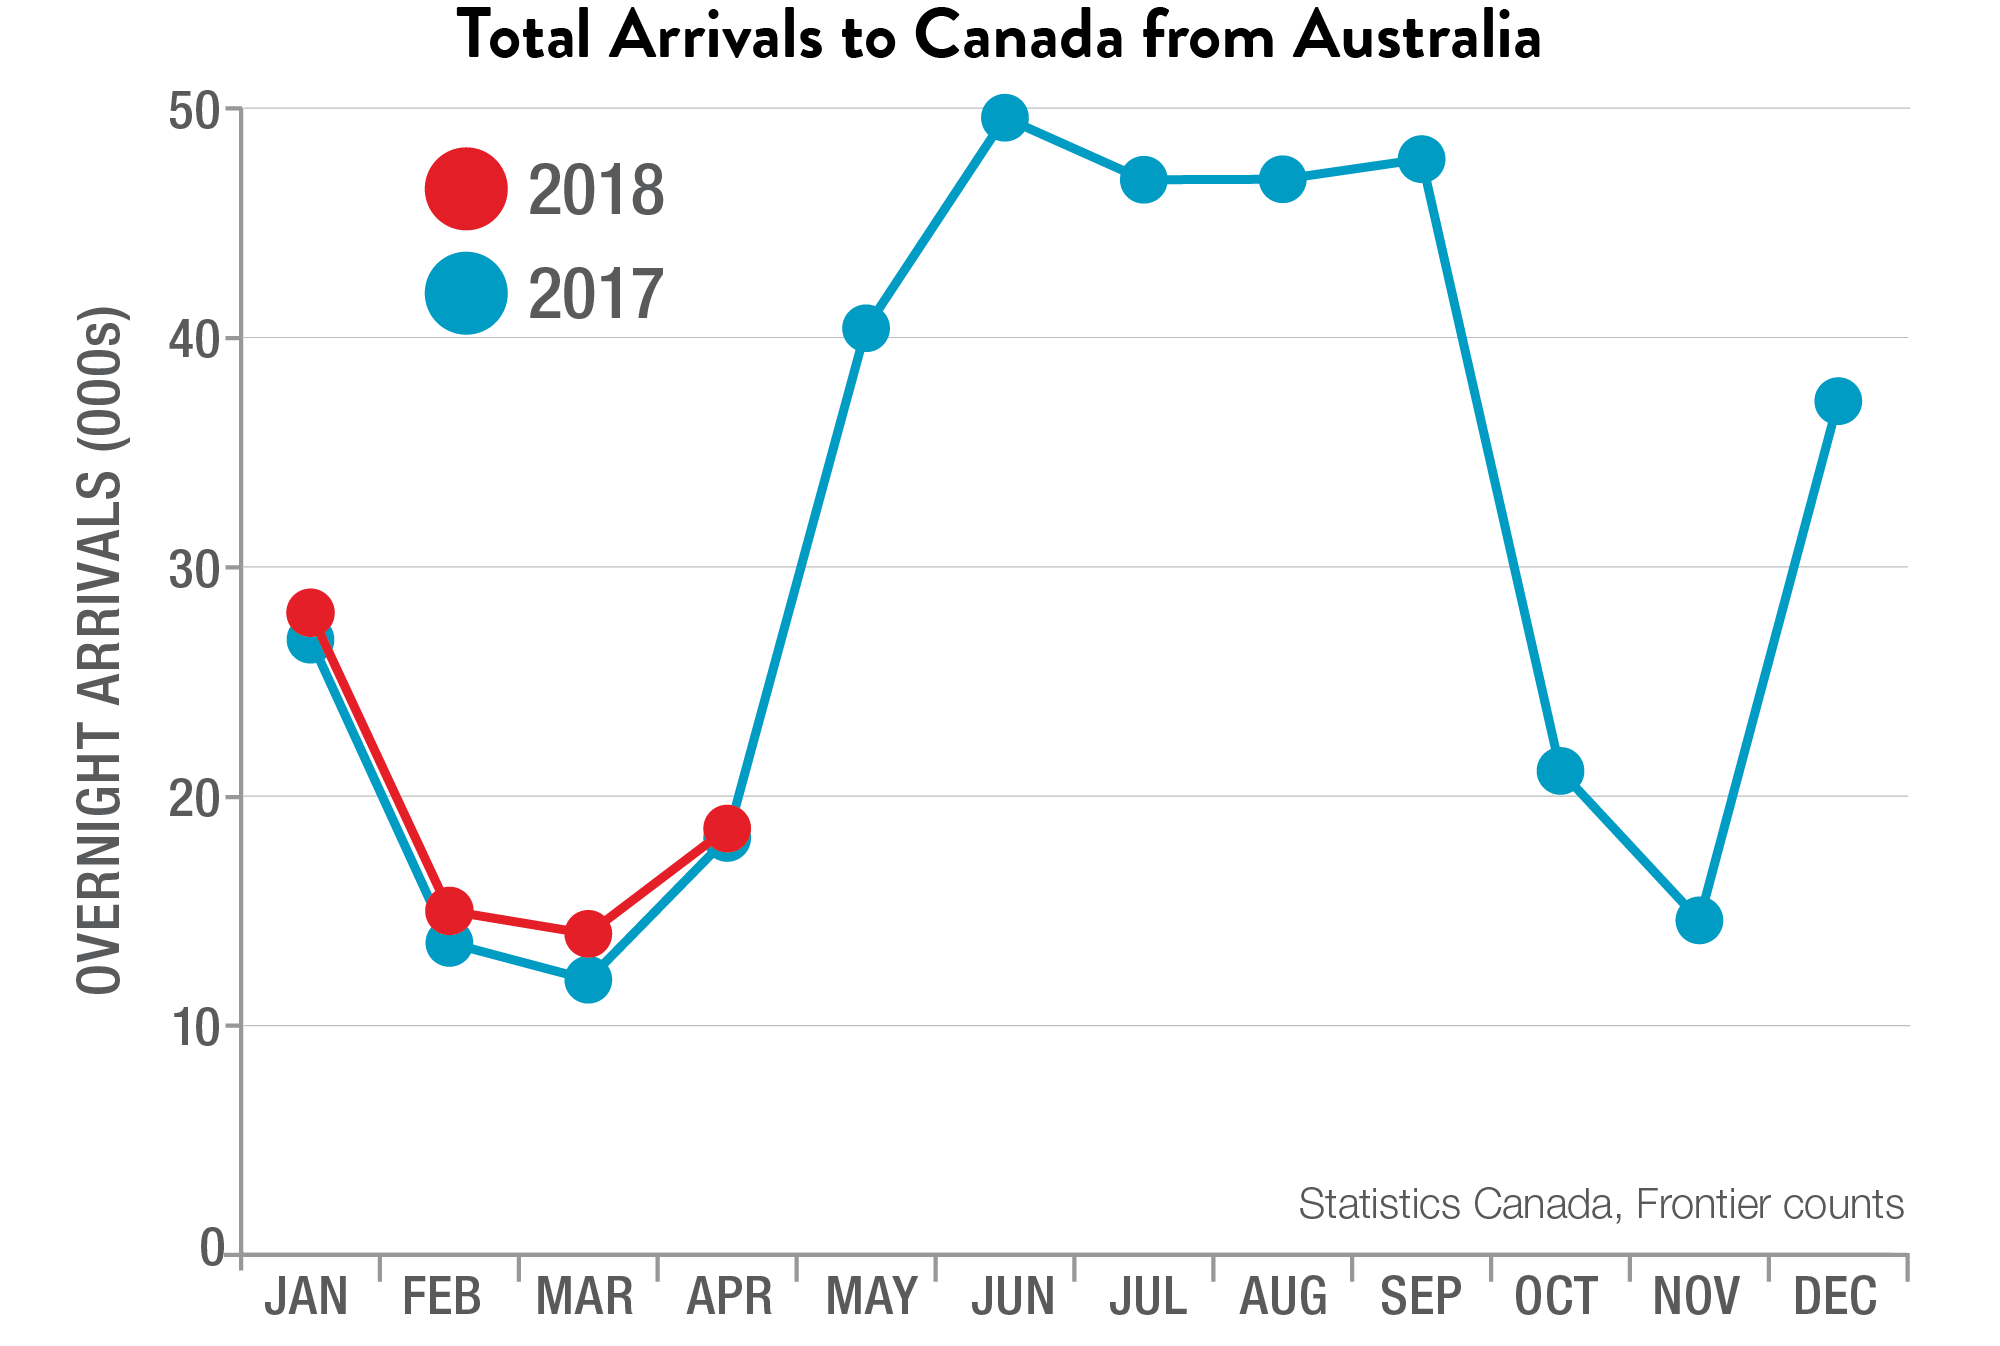 Total Arrivals to Canada from Australia